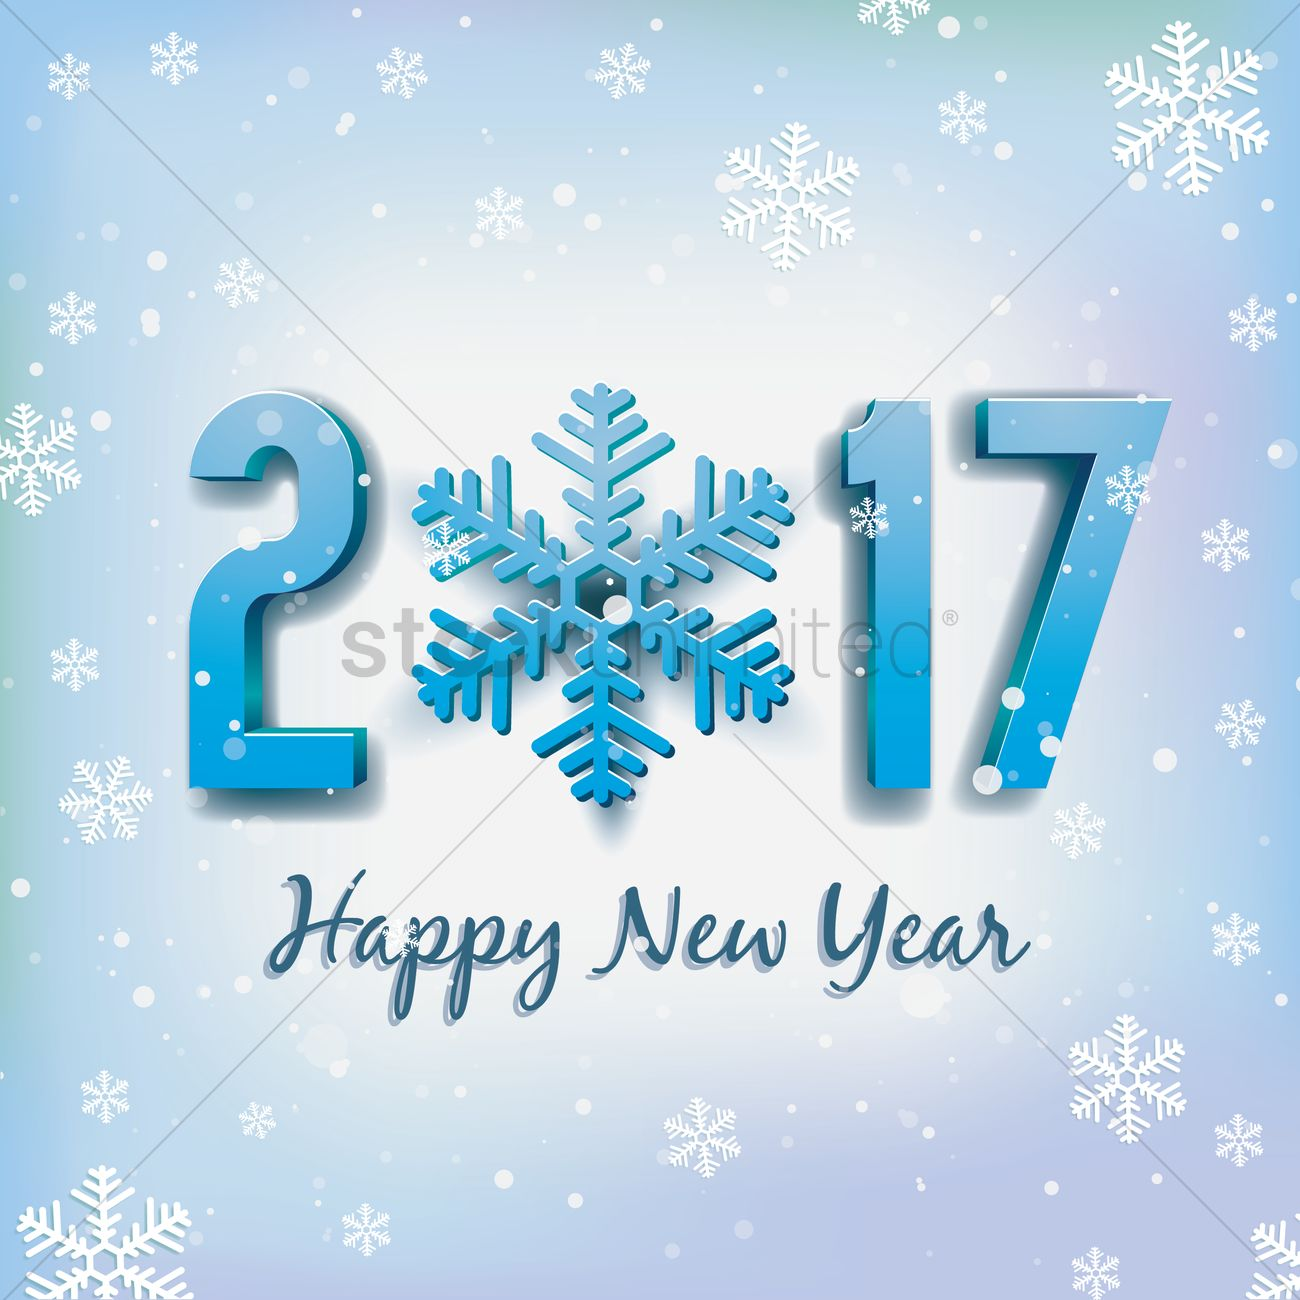 2017 happy new year greeting vector image 1940350 stockunlimited 2017 happy new year greeting vector graphic kristyandbryce Gallery